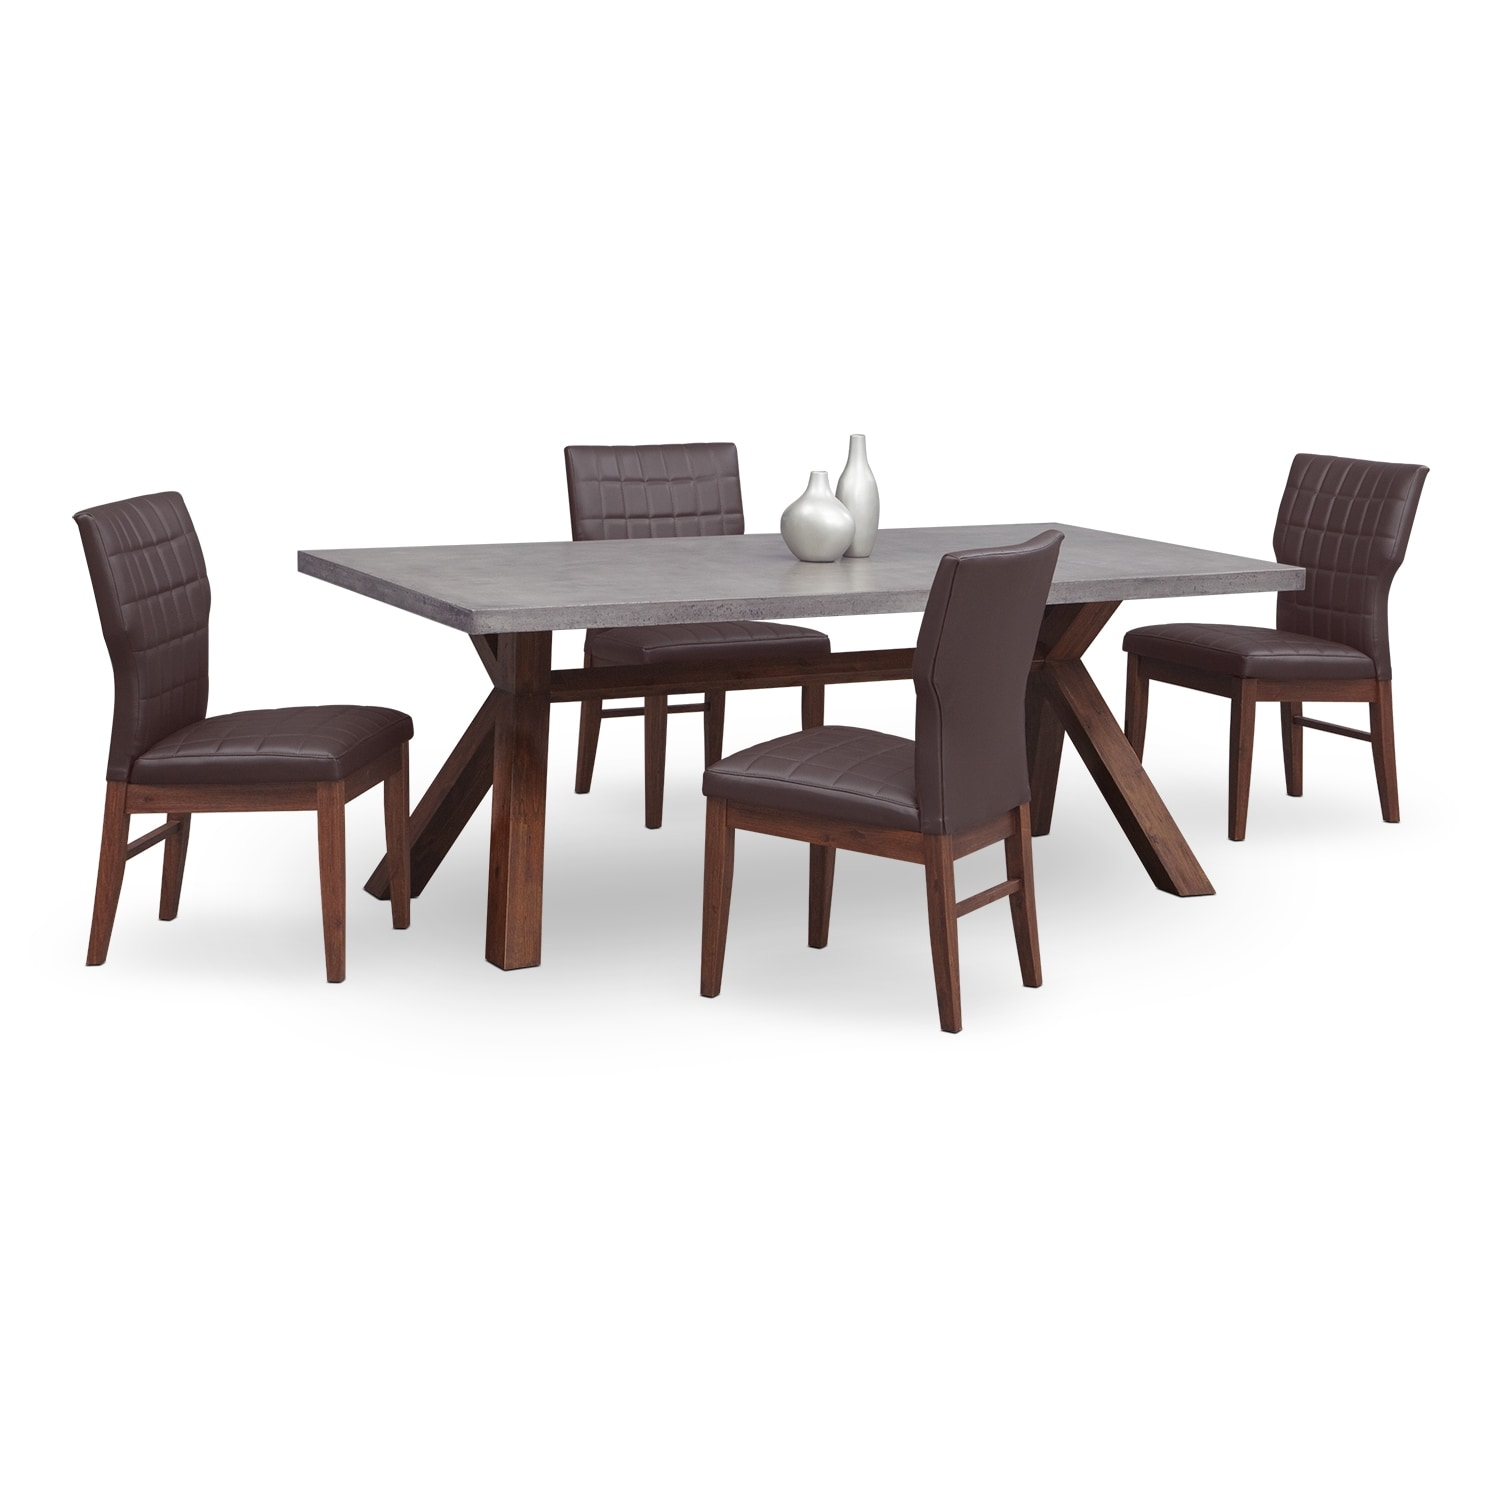 City Furniture Dining Room Dining Room Furniture Luna Pearl Ii 5 Pc Dinette 60 Images Patio